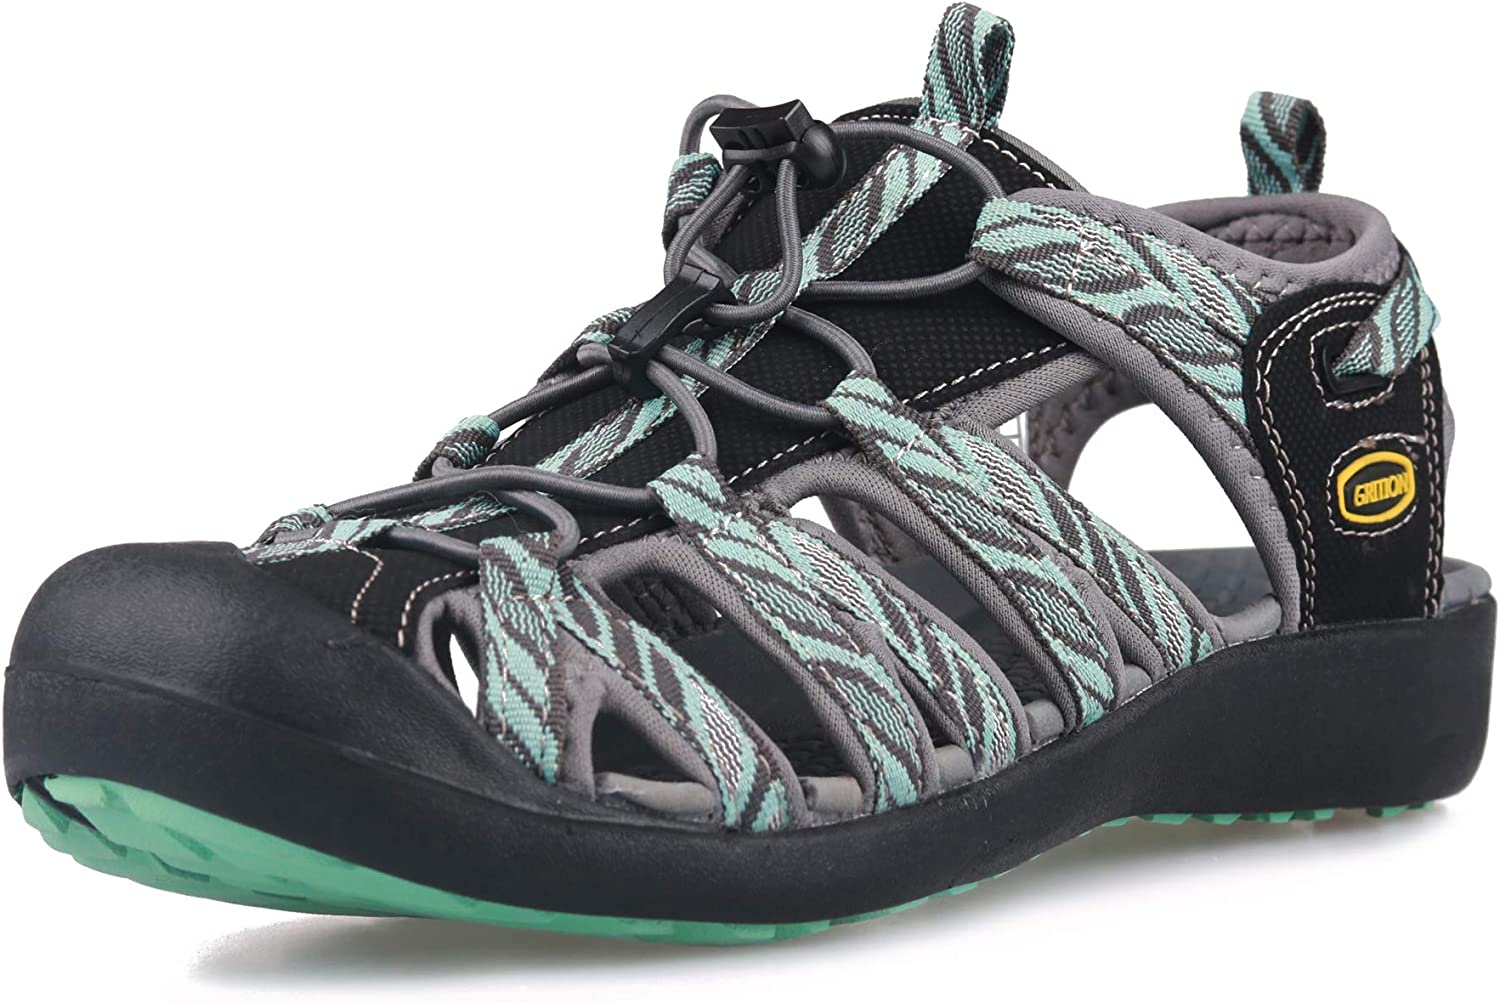 GRITION Women Athletic Hiking Sandals Closed Toe Water Shoes Adventure Outdoor Sport Trail Summer